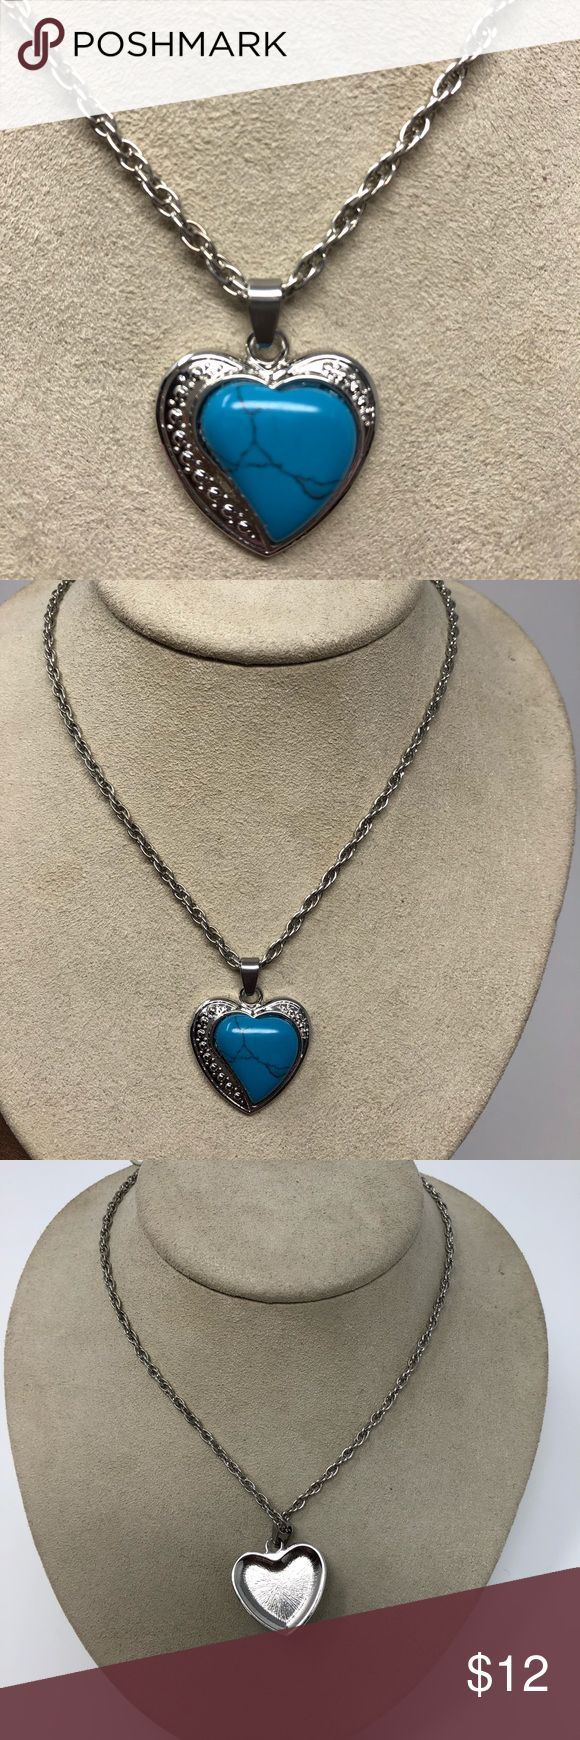 TURQUOISE HEART NECKLACE Very pretty silver rope necklace with a lobster clasp closure. Turquoise heart with a silver outline. That really makes this POP! Add this to any oversized sweater, business suit or lbd. A small detail can speak volumes. Tucker Jewelry Necklaces